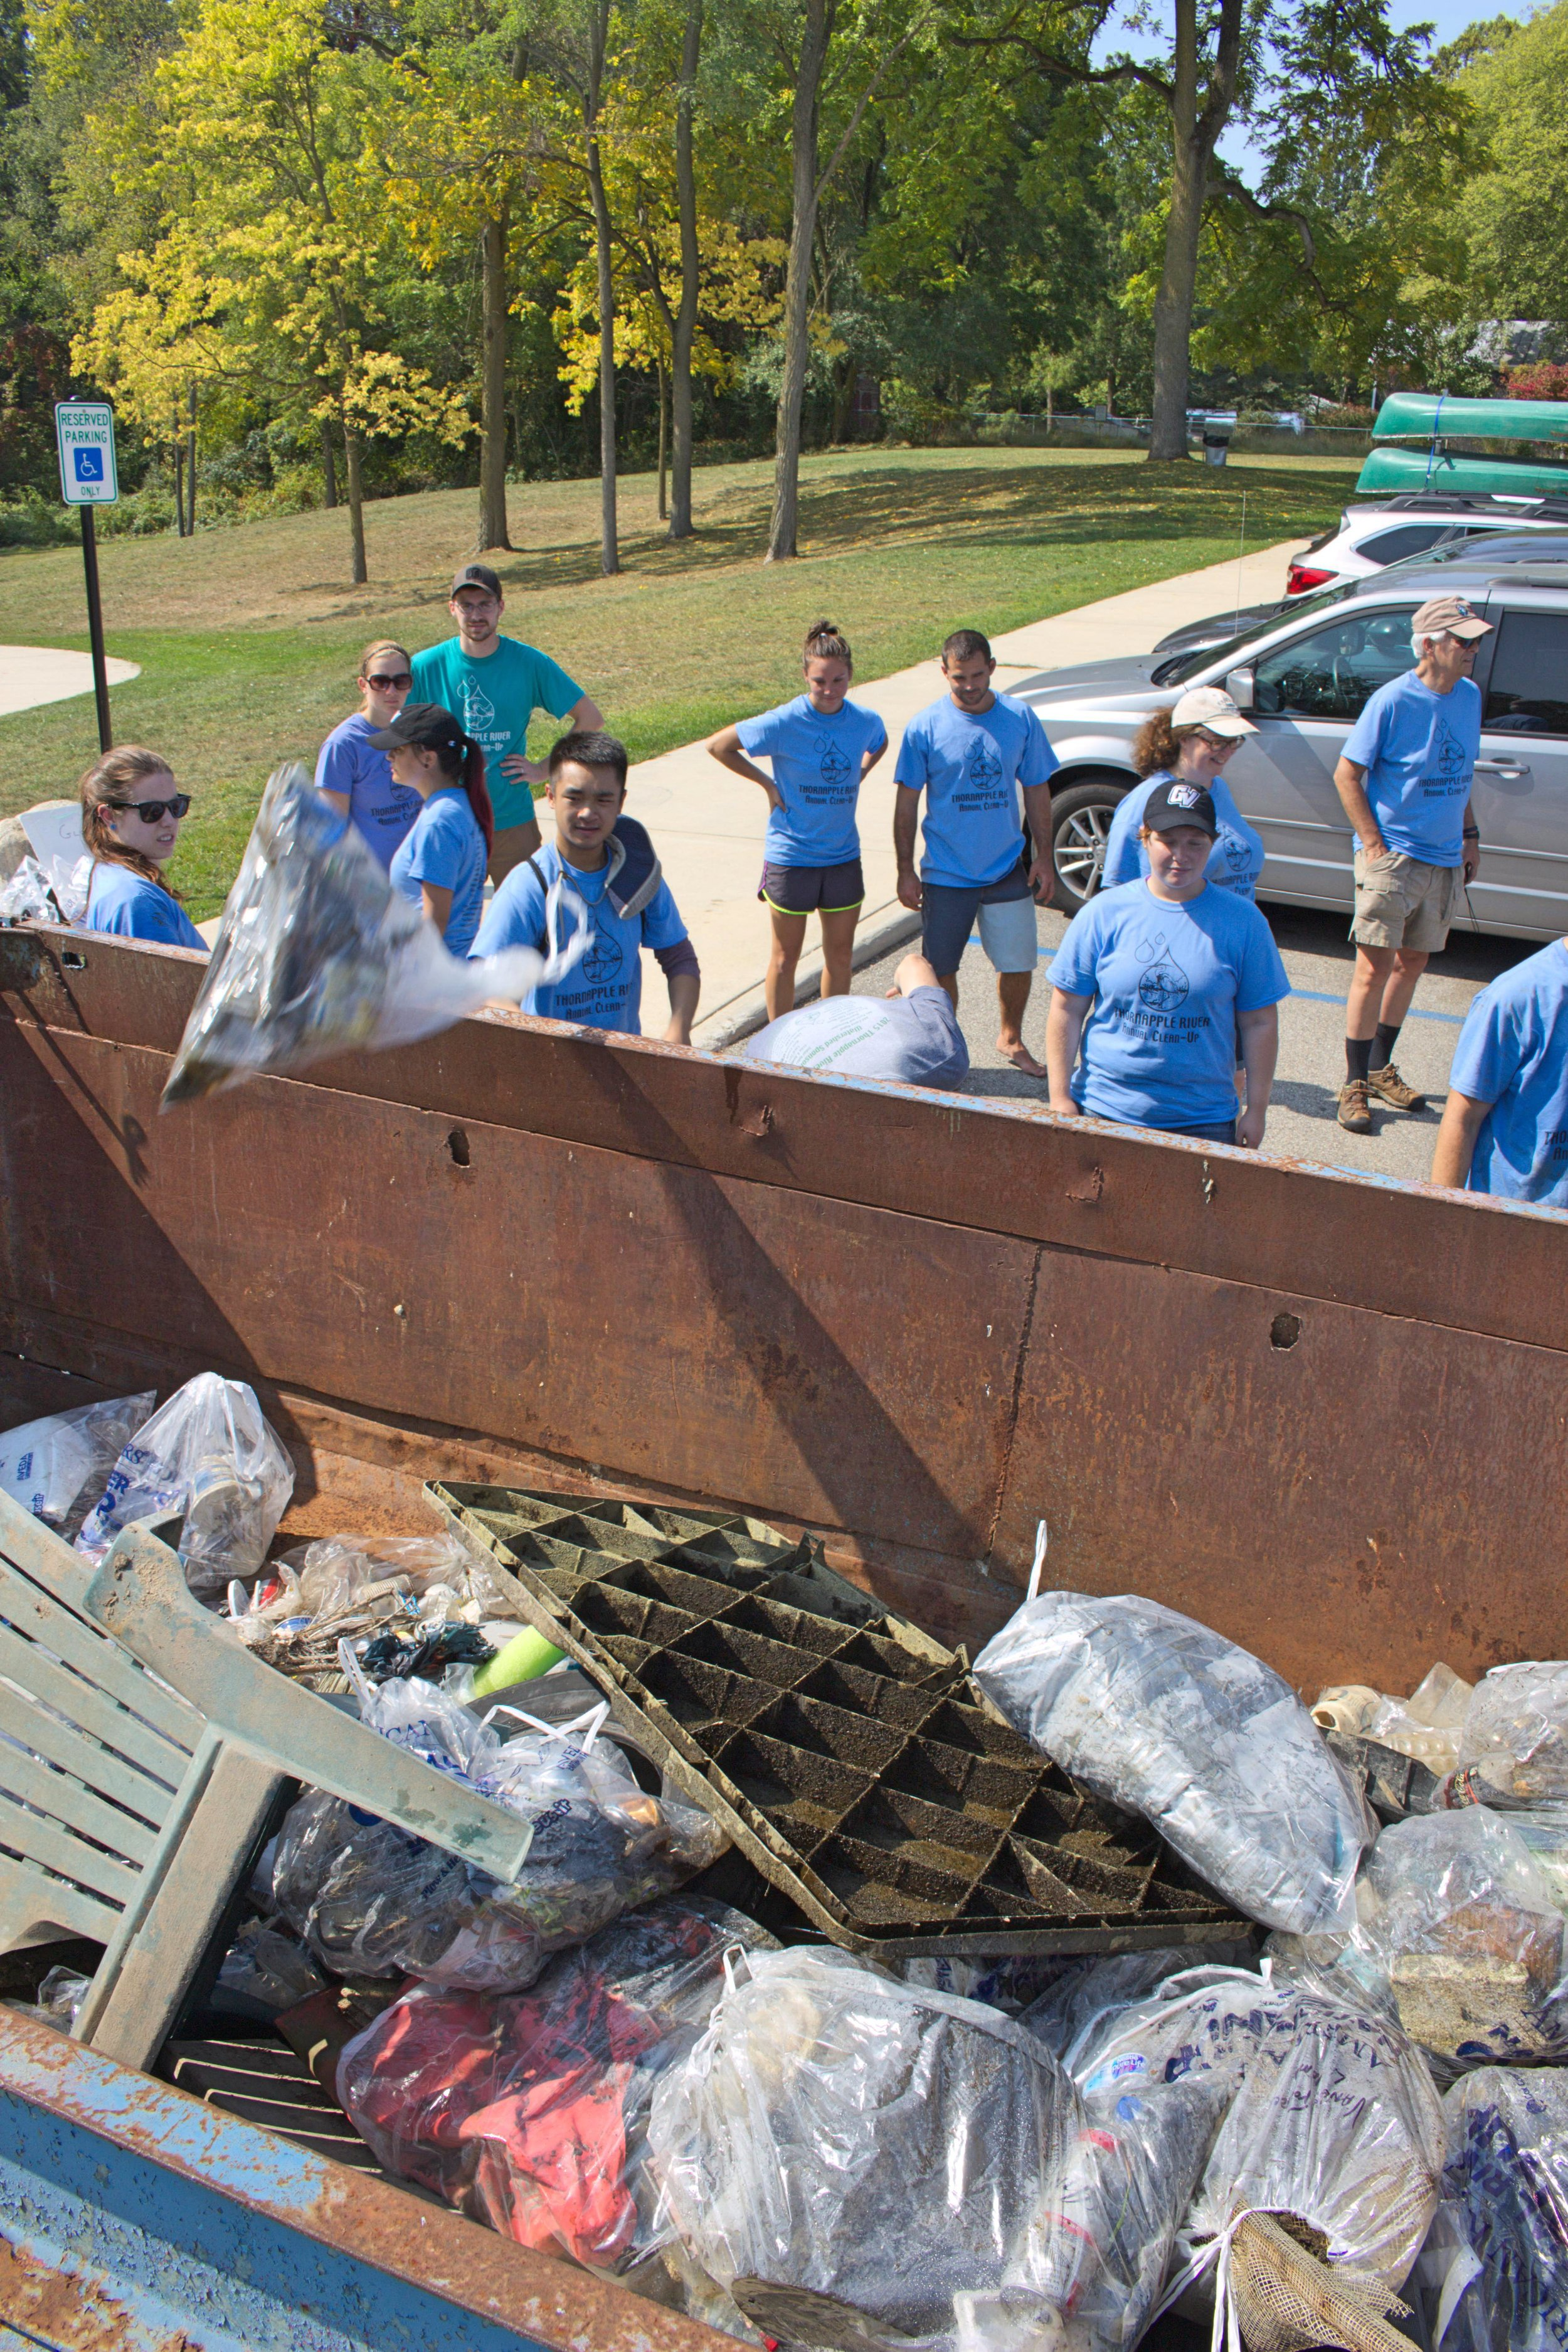 According to Steketee, the group finds less and less garbage each year, which is great. This year they found a bit more than last year, but it was attributed to the low water-level and clear water making the trash easier to find. After the clean-up, the group tucked into a free lunch provided by local businesses who appreciate the group's work.